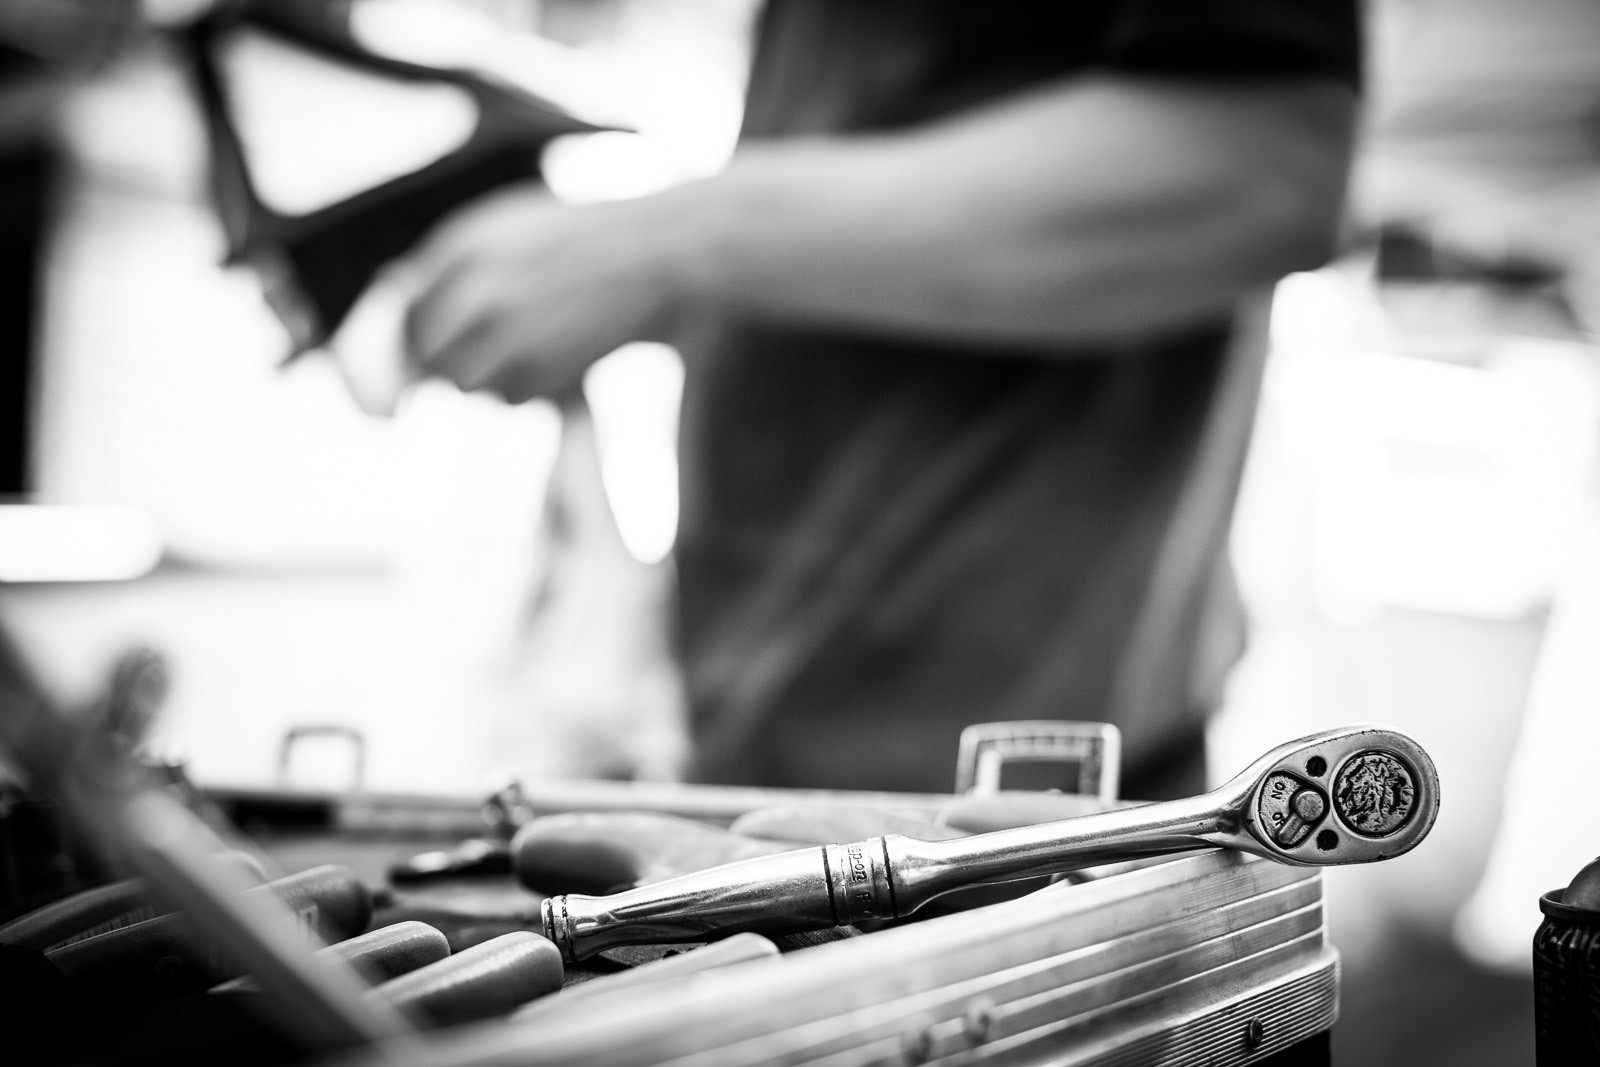 The View from the Toolbox - Pit Bits: 2013 Val di Sole World Cup - Mountain Biking Pictures - Vital MTB